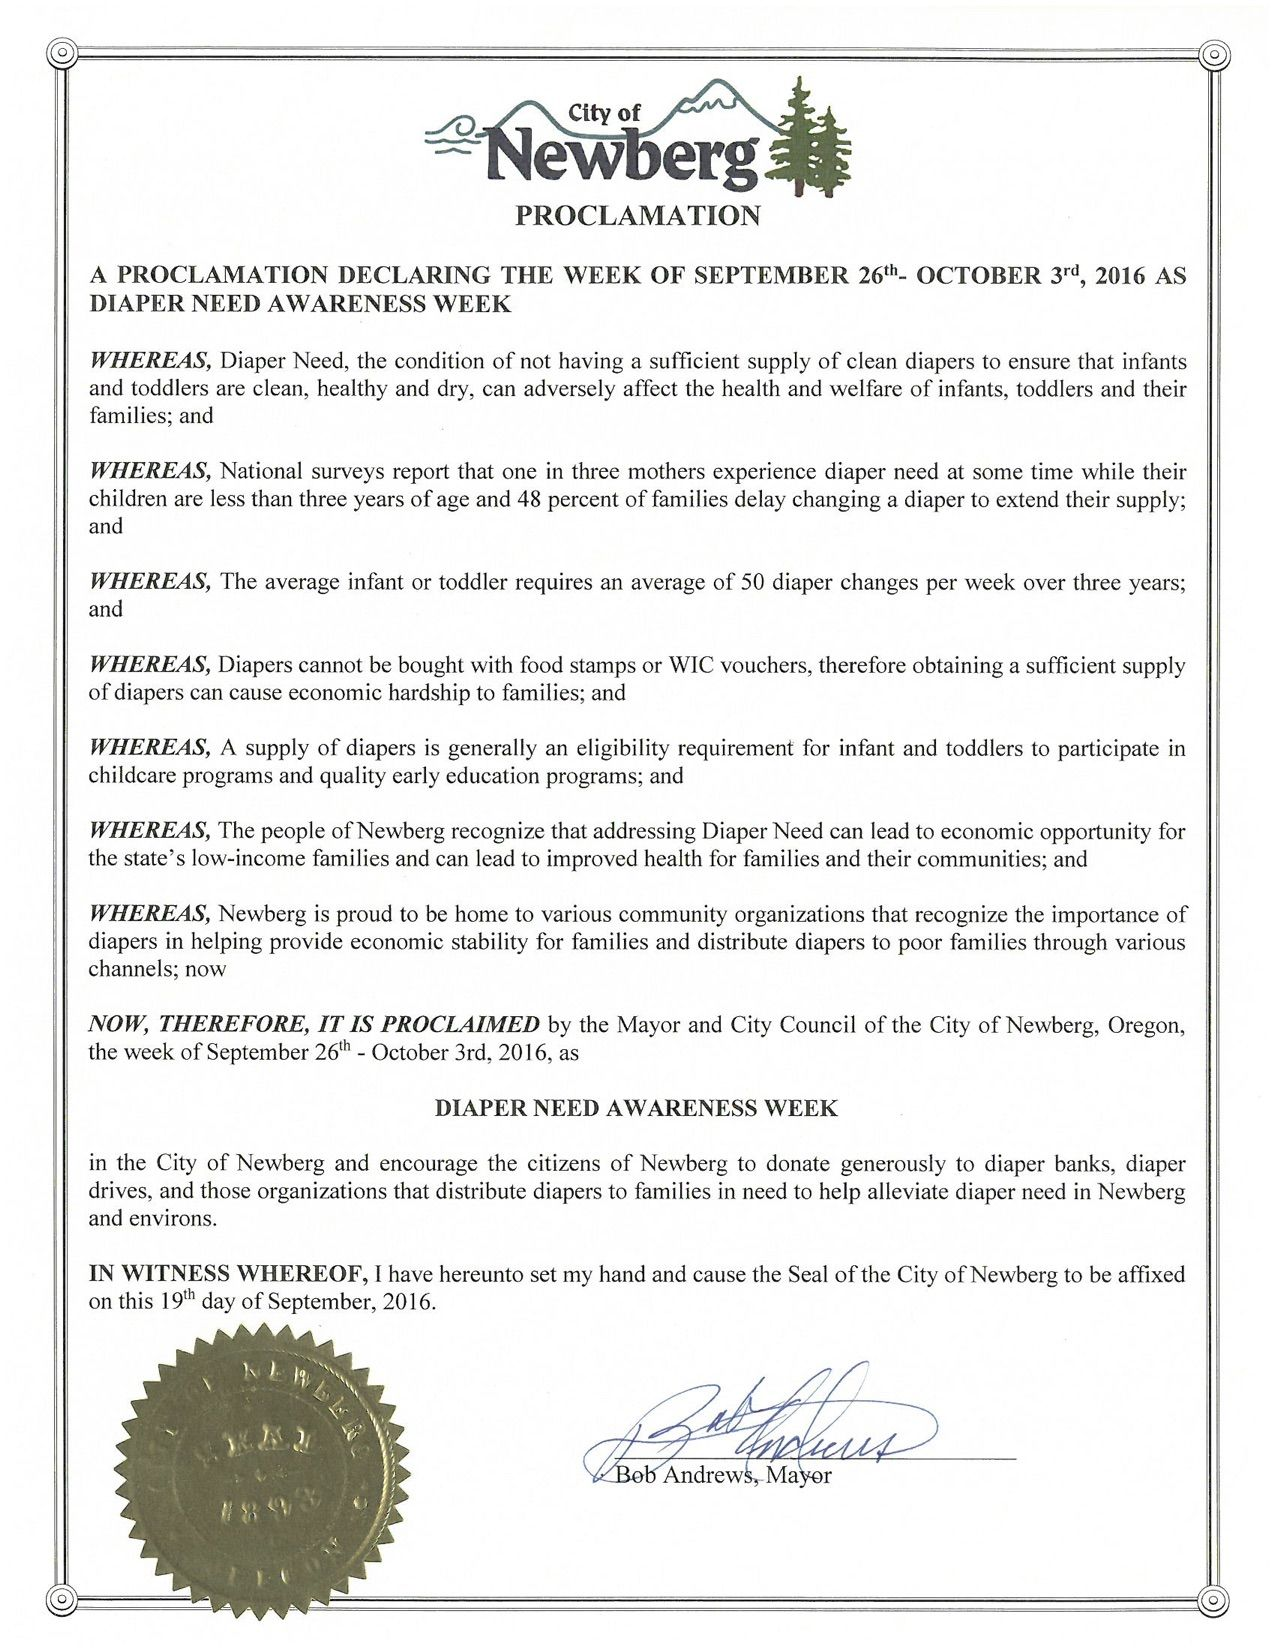 NEWBERG, OR -  Mayoral proclamation recognizing Diaper Need Awareness Week (Sep. 26-Oct. 2, 2016) #DiaperNeed Diaperneed.org